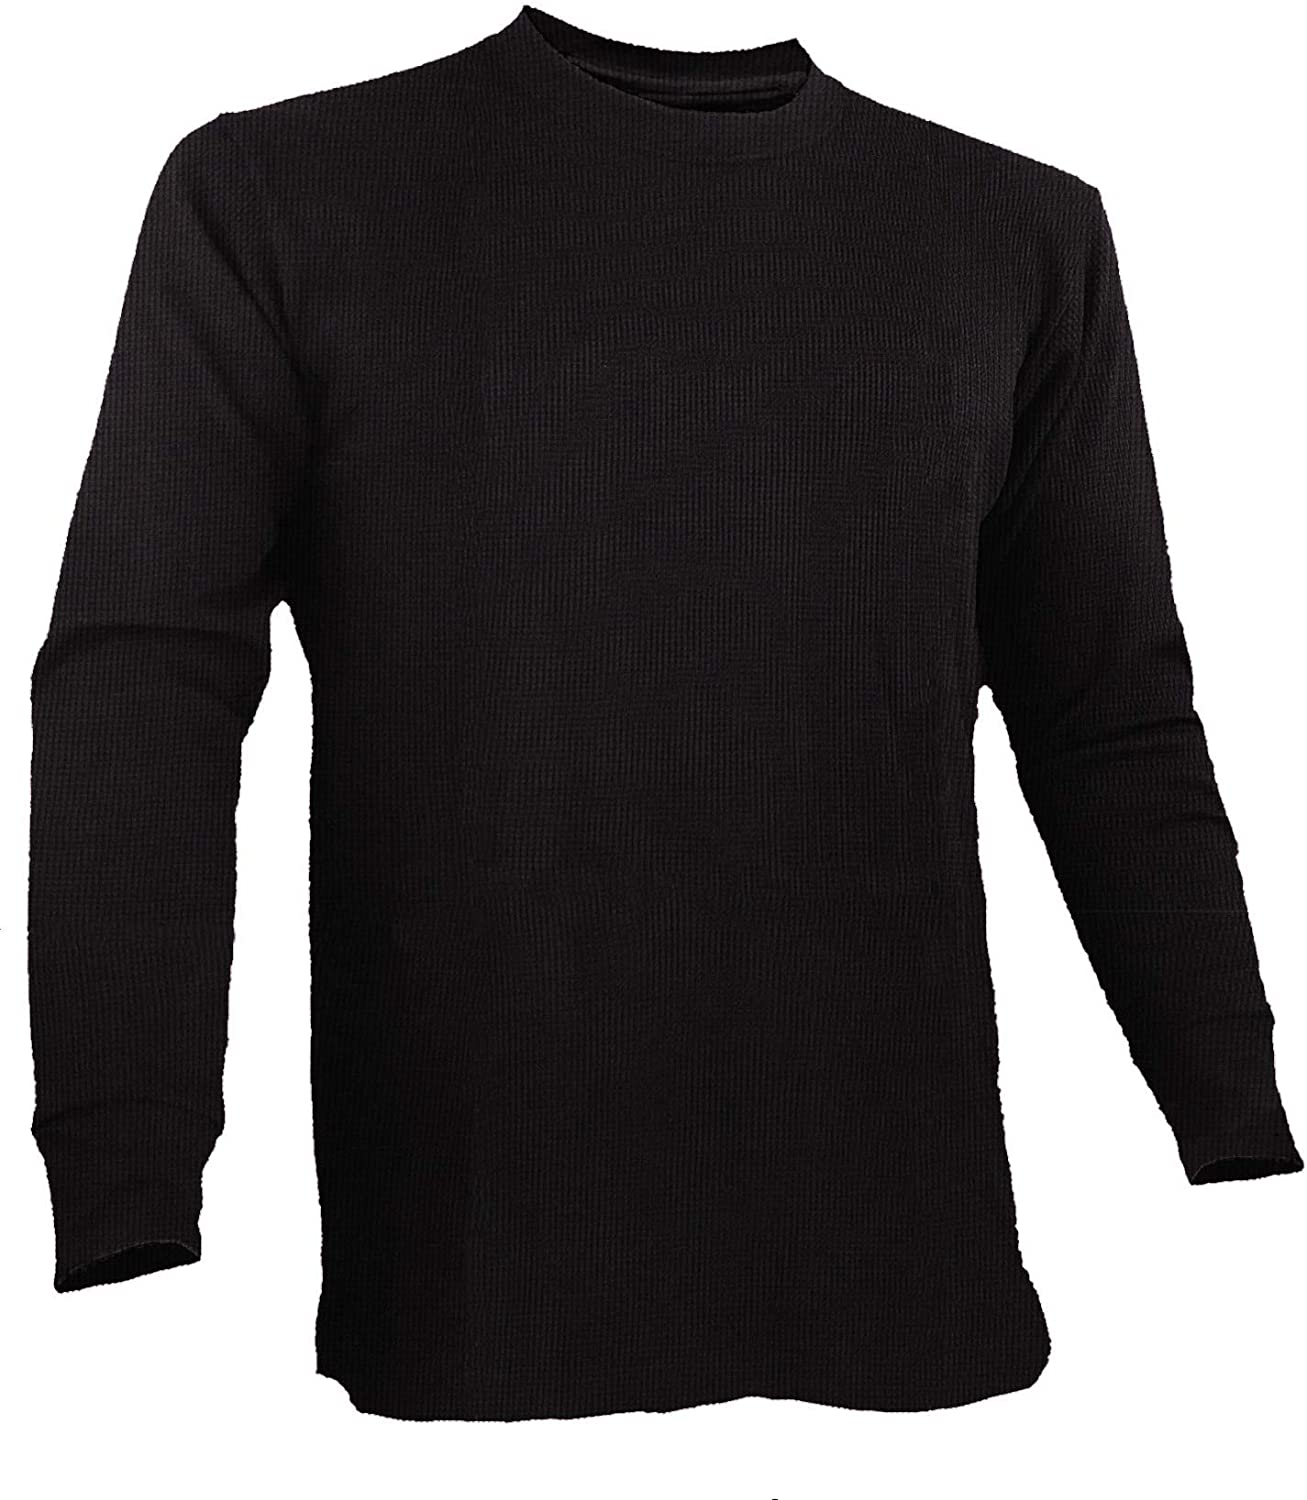 Styllion Men's Thermal Shirt - Heavy Weight - Big and Tall - TCLS